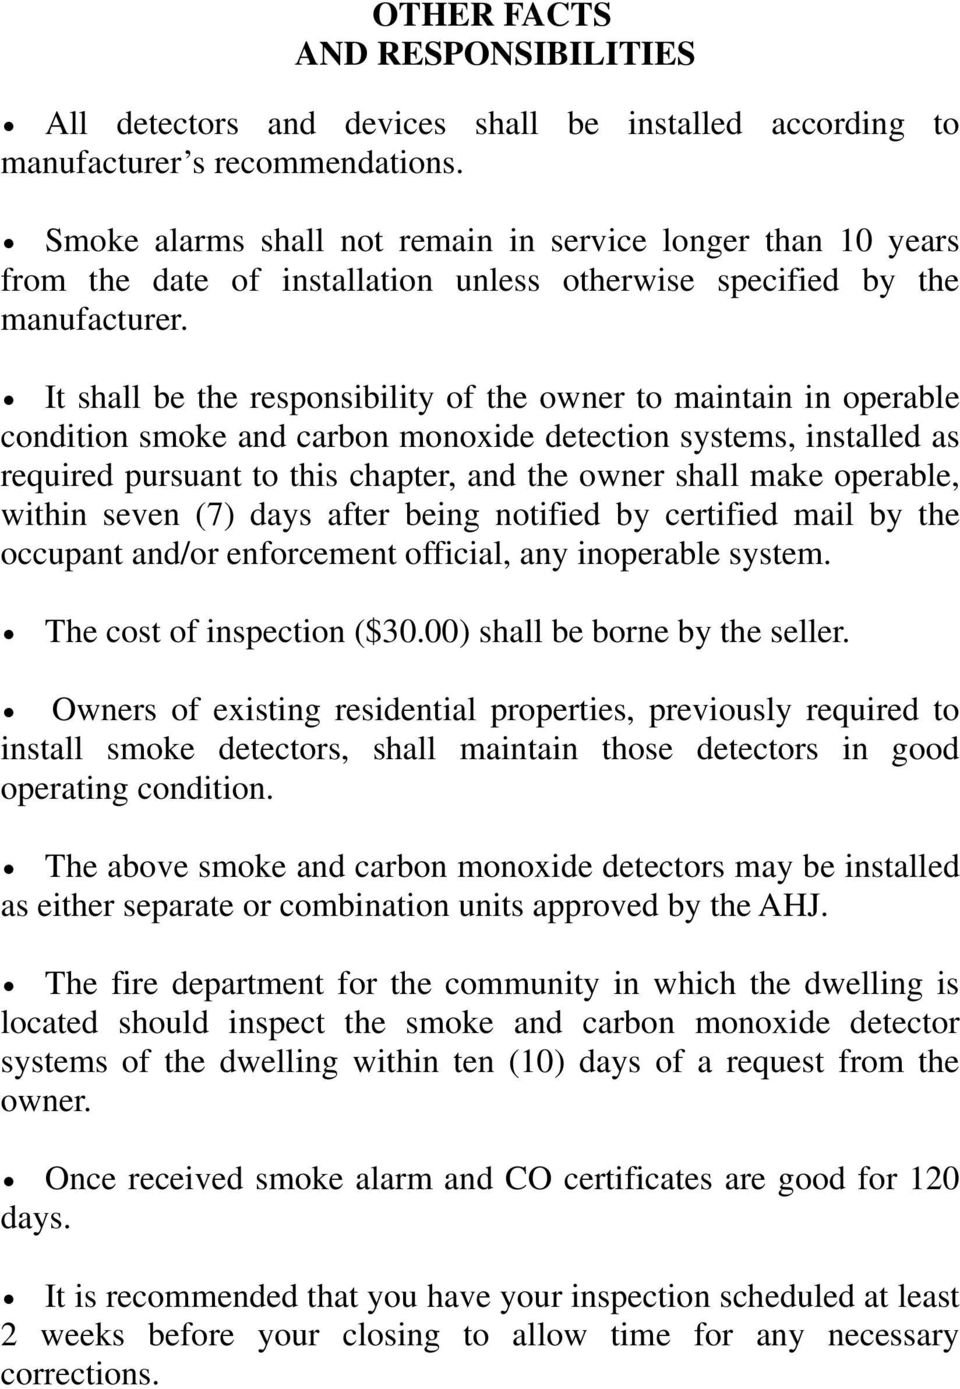 It shall be the responsibility of the owner to maintain in operable condition smoke and carbon monoxide detection systems, installed as required pursuant to this chapter, and the owner shall make